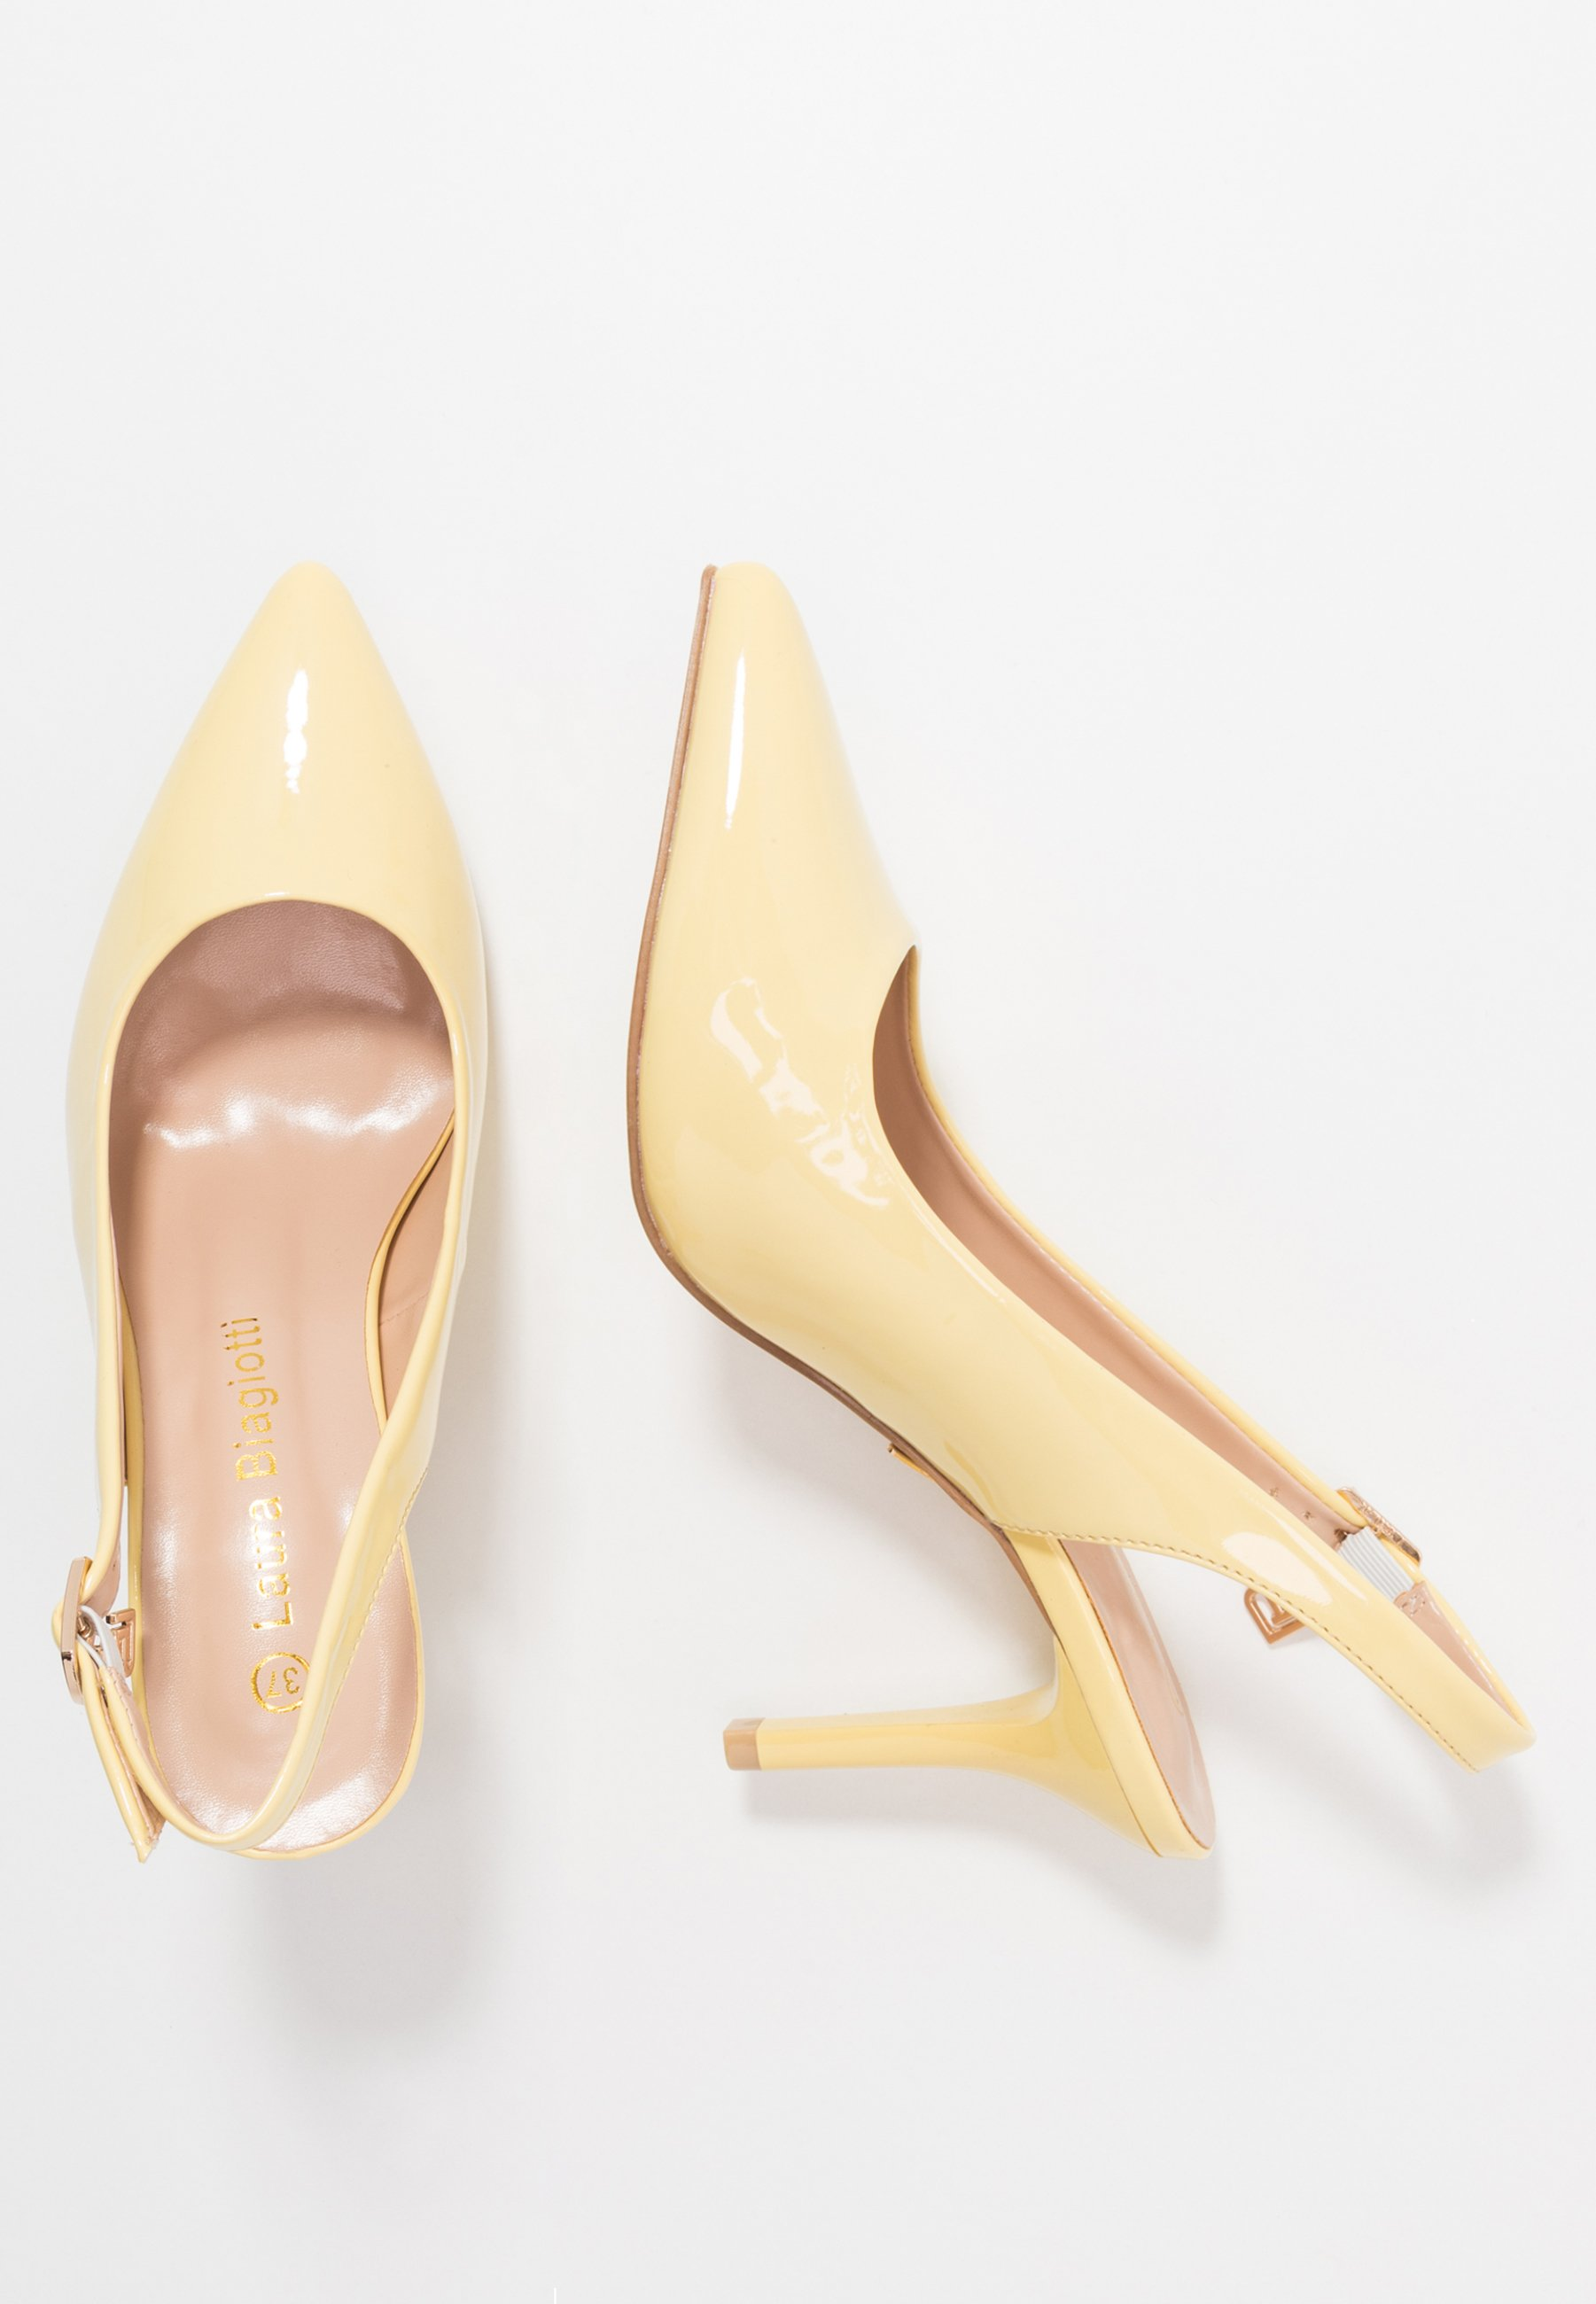 Laura Biagiotti Klassiska Pumps - Lemon